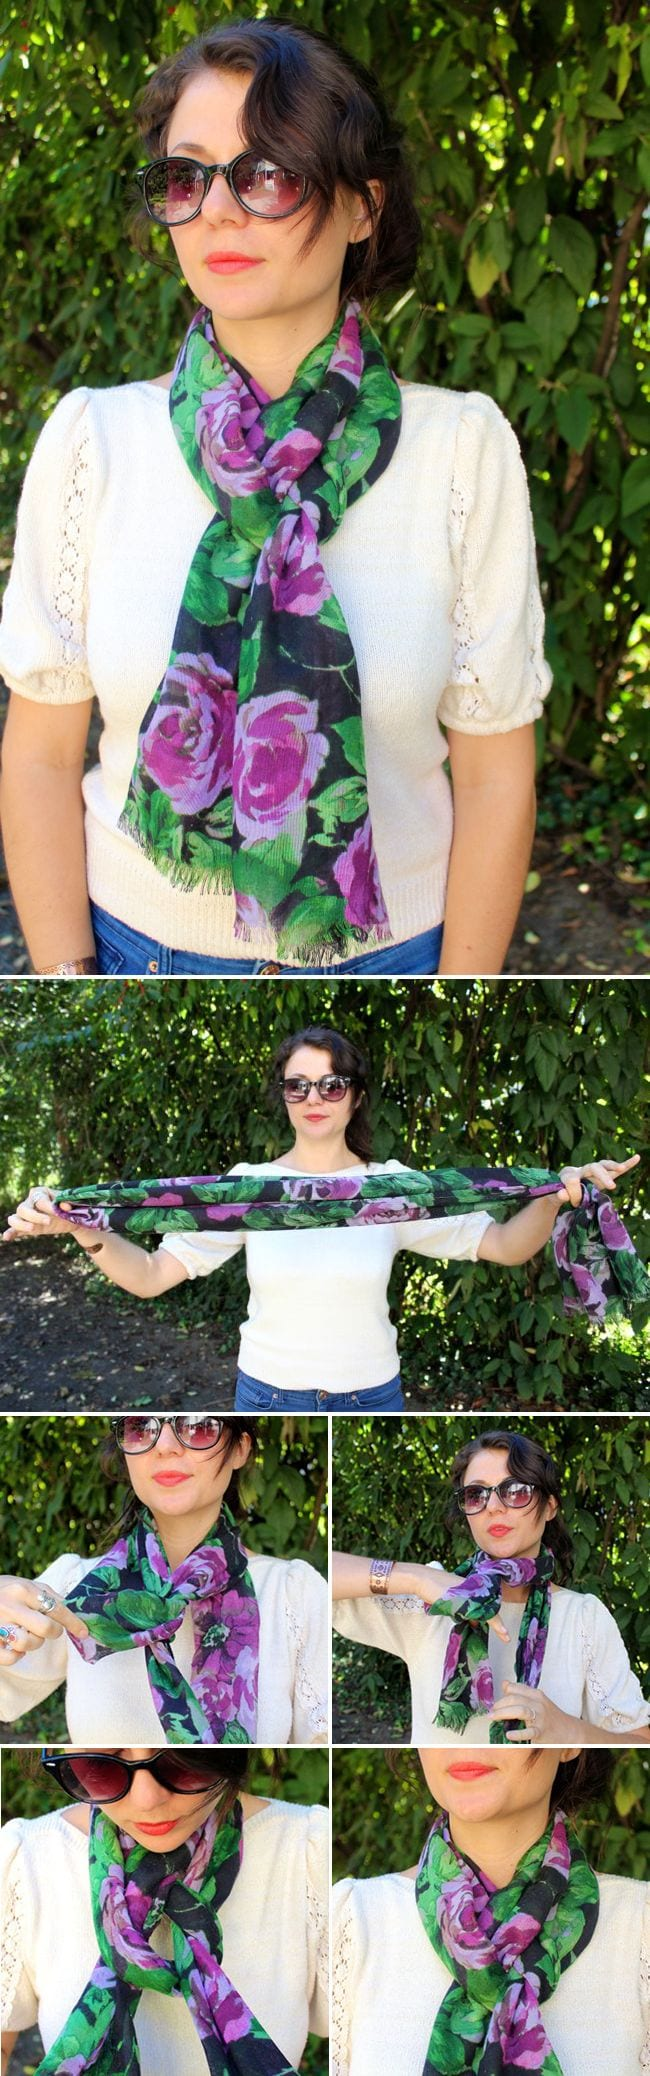 how-to-tie-a-scarf-tutorials 5 Trendy Scarves Wrapping Styles to Compliment Your Outfit